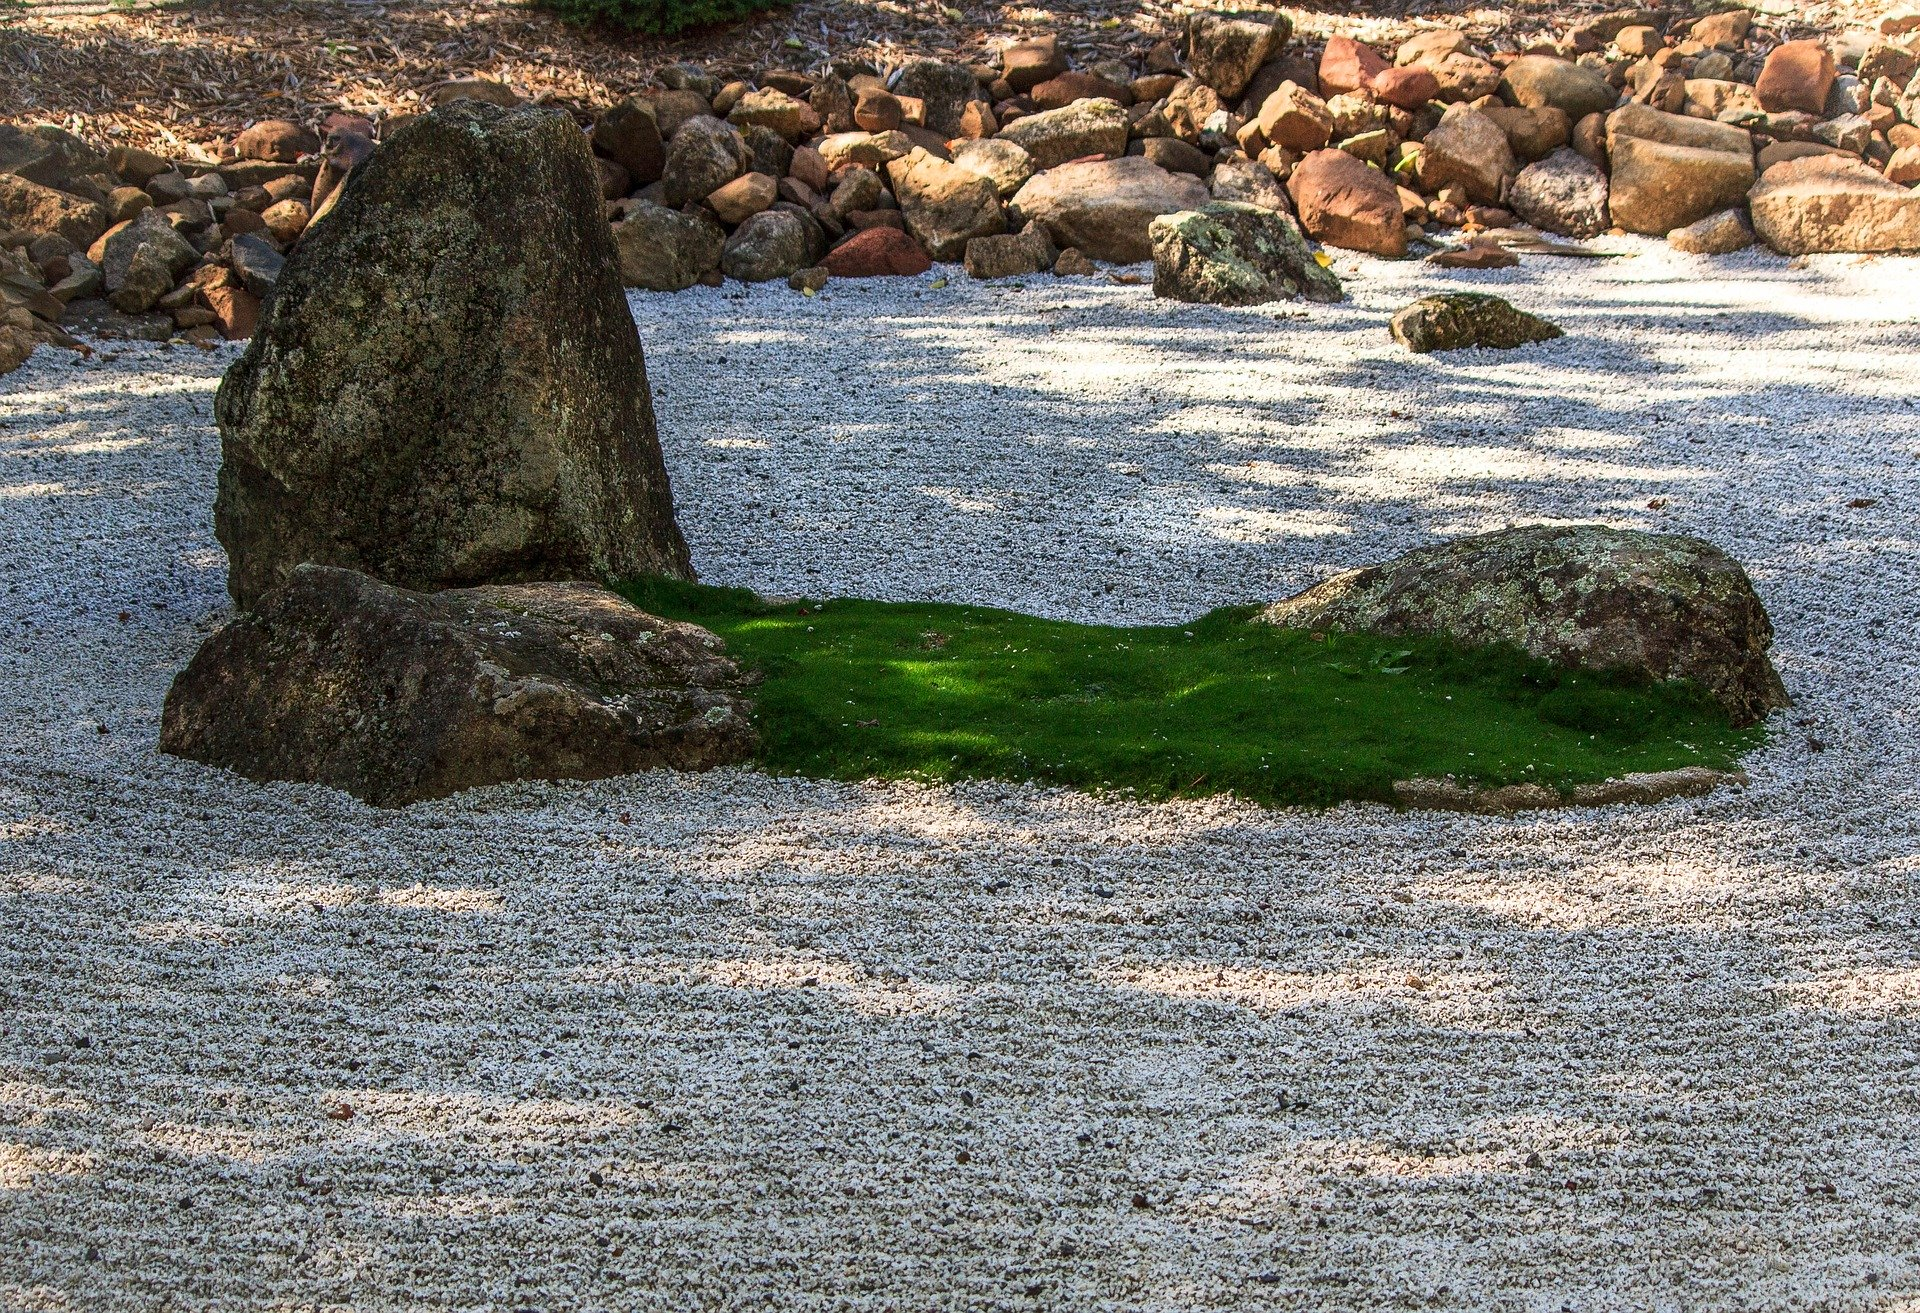 Outdoor zen garden with rocks and moss at the center.